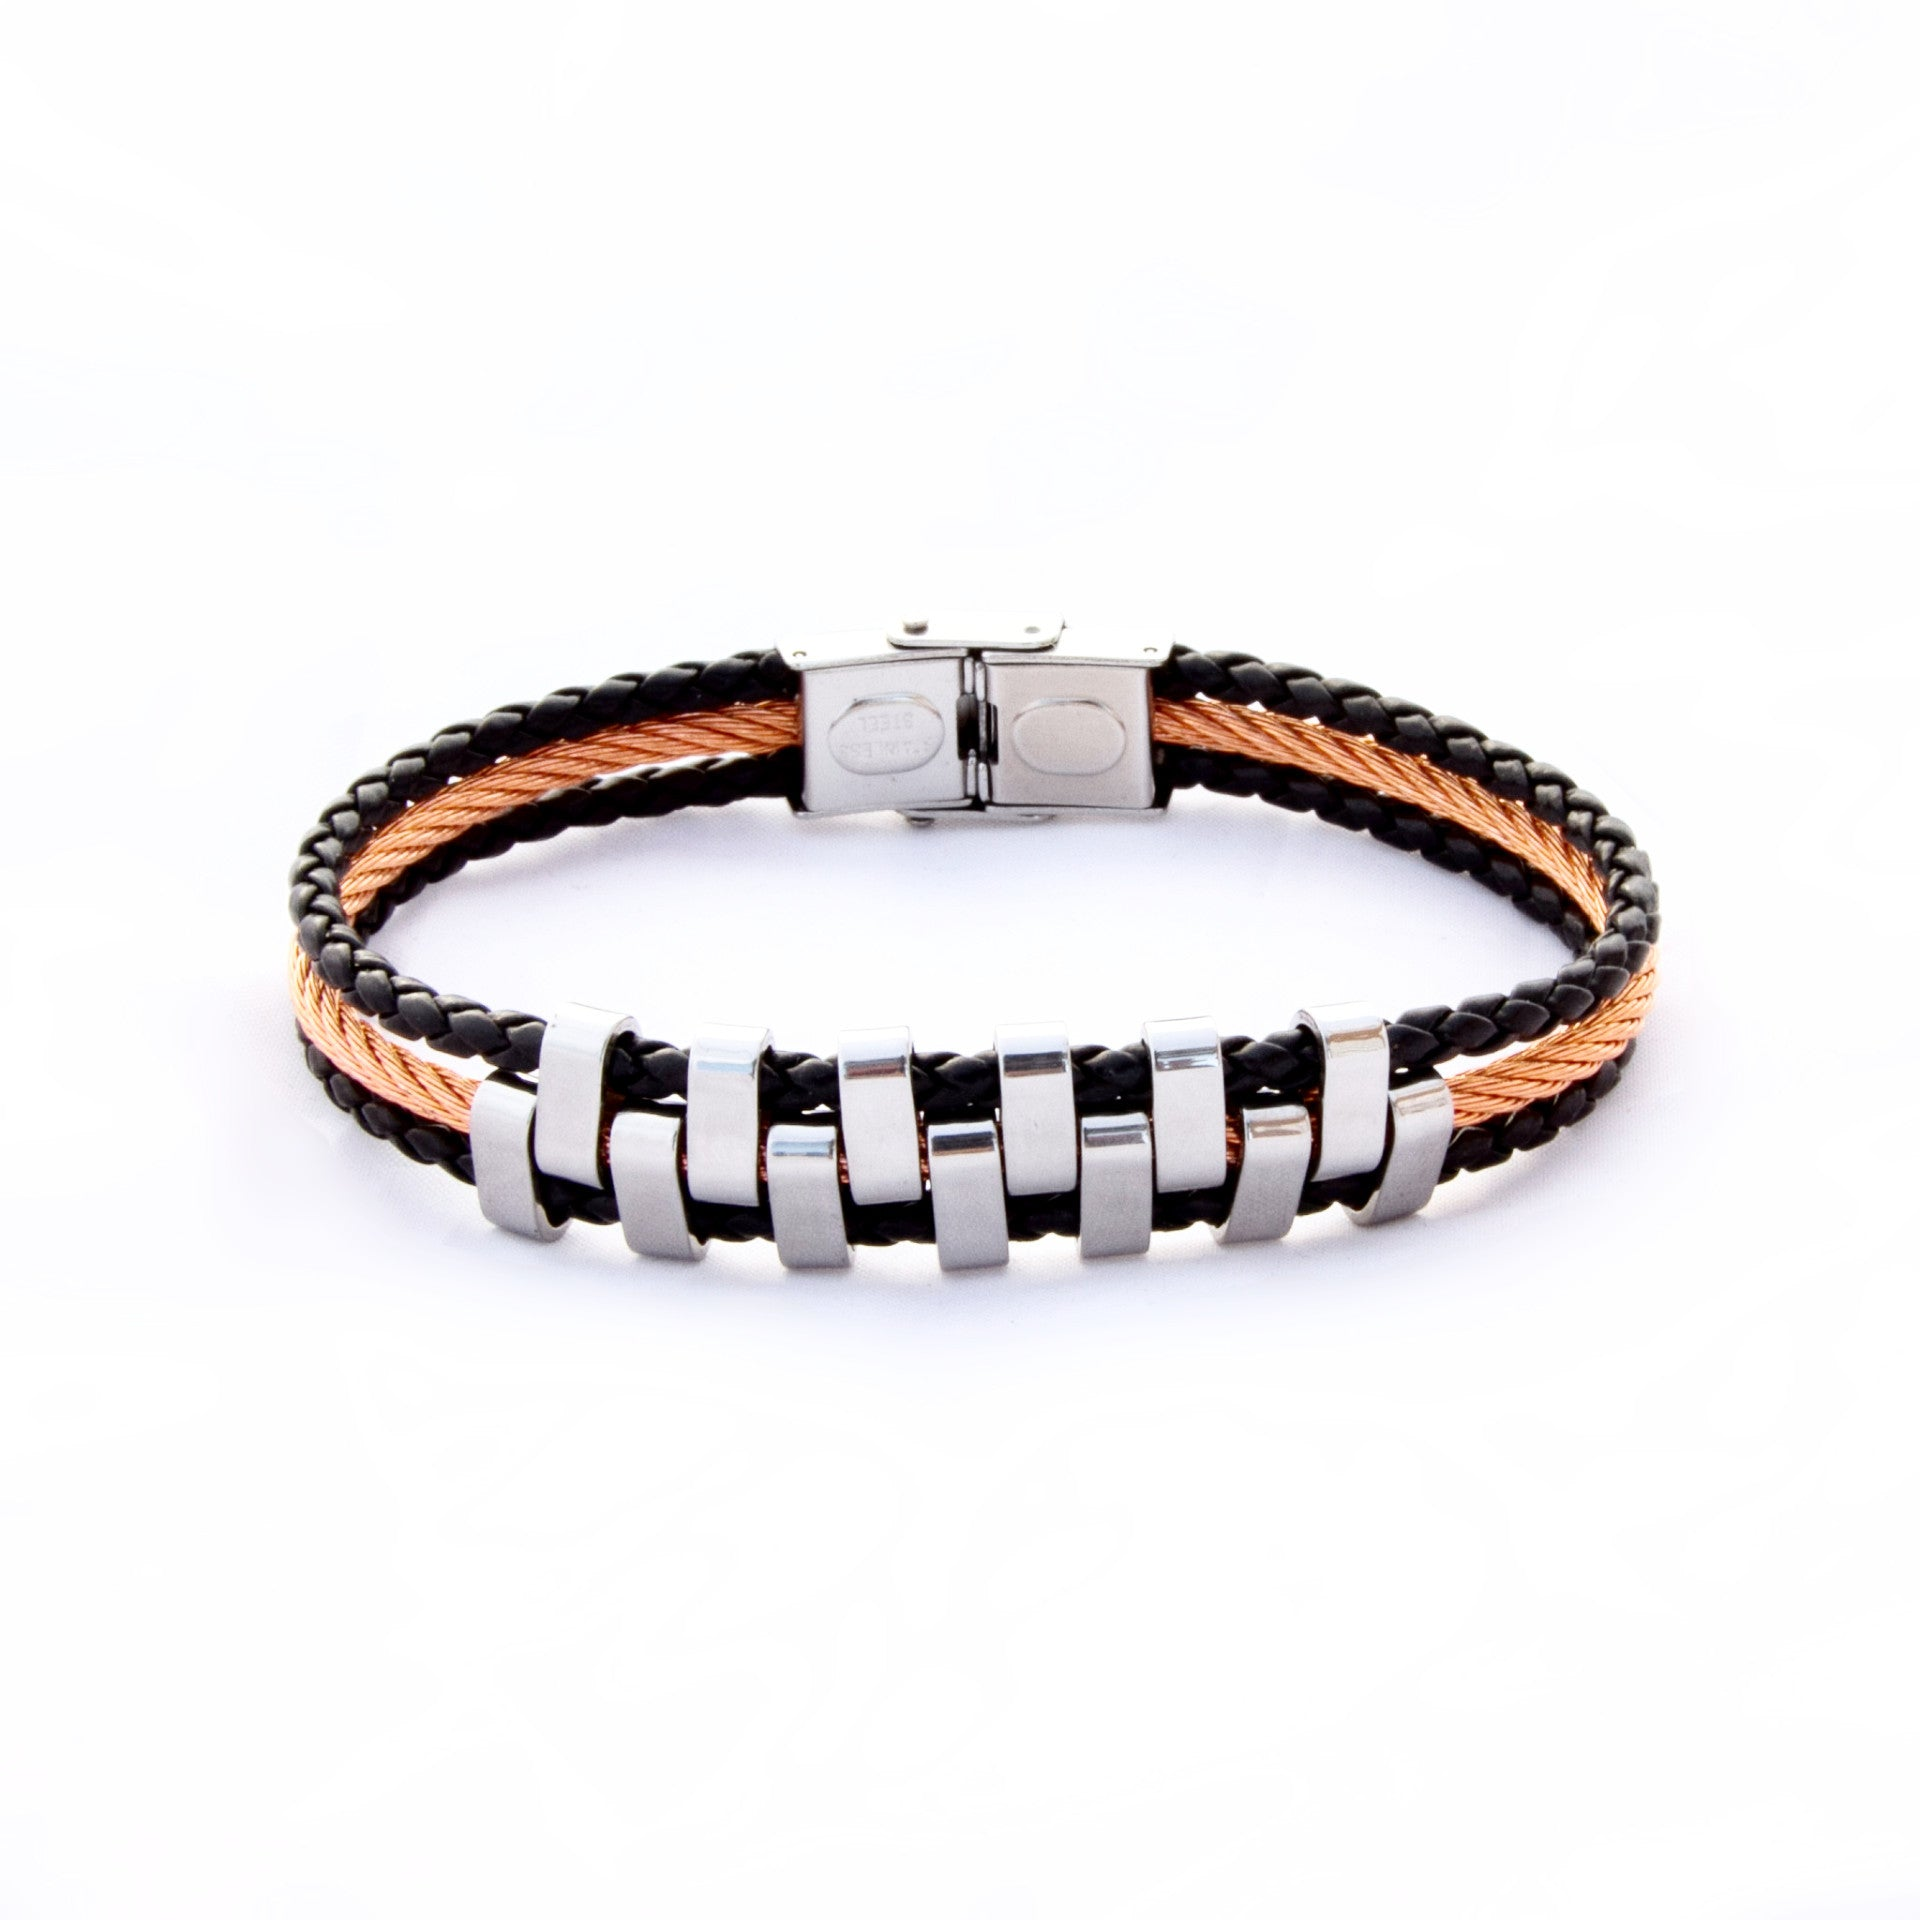 TrendyBracelets.Biz.Stainless Steel and Black Leather Bracelet with Orange Tone Steel